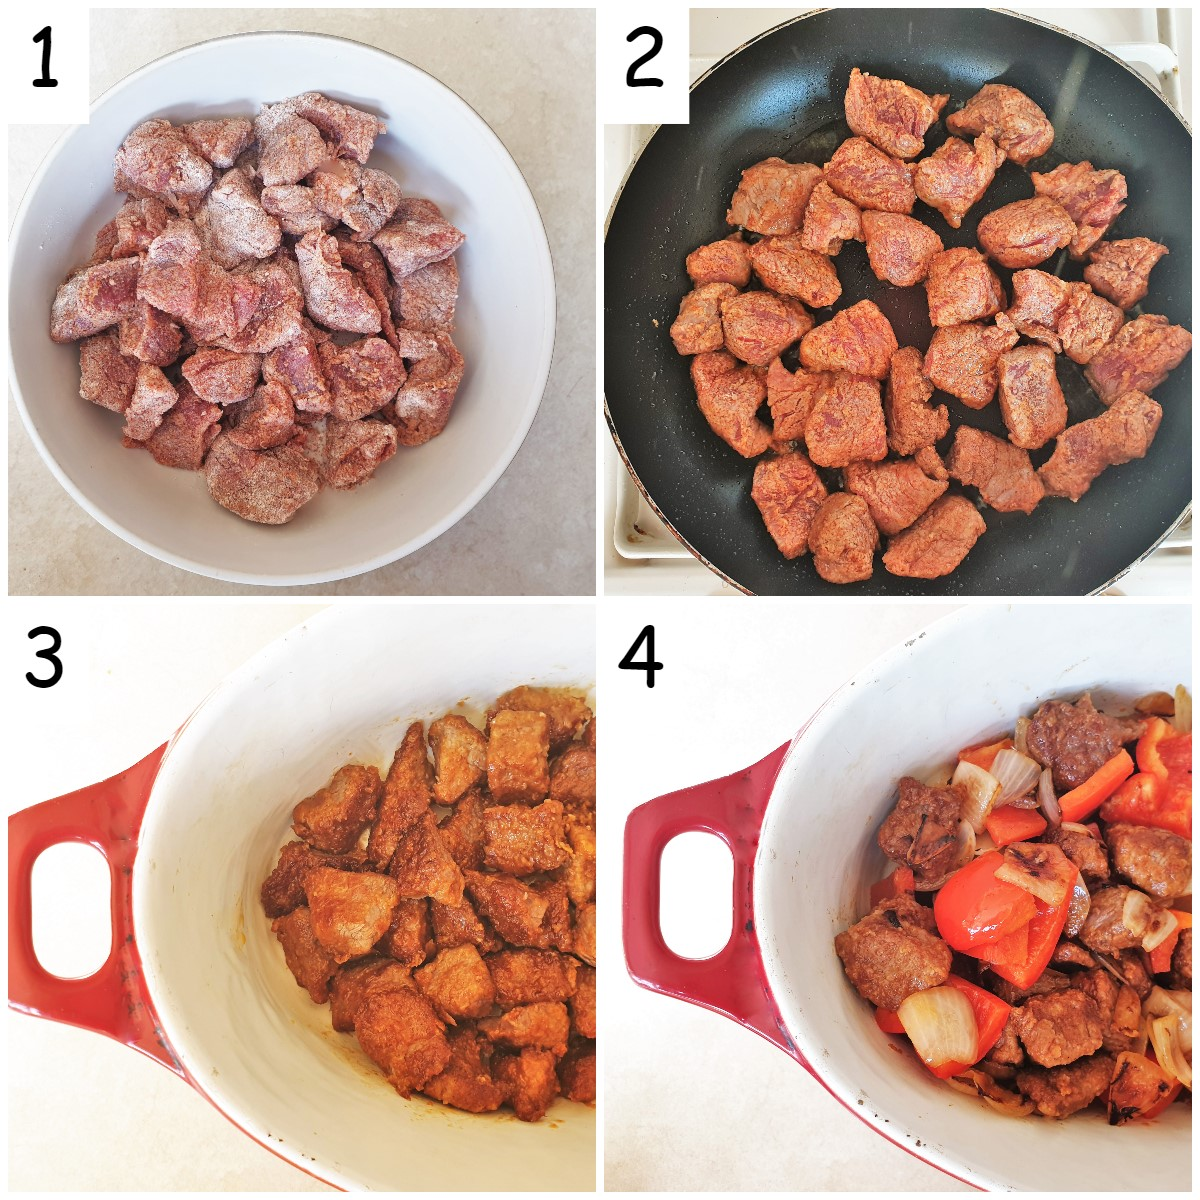 A collage of 4 images showing flour-coated beef being browned in a pan and then being placed in a casserole dish with softened onions and red peppers.